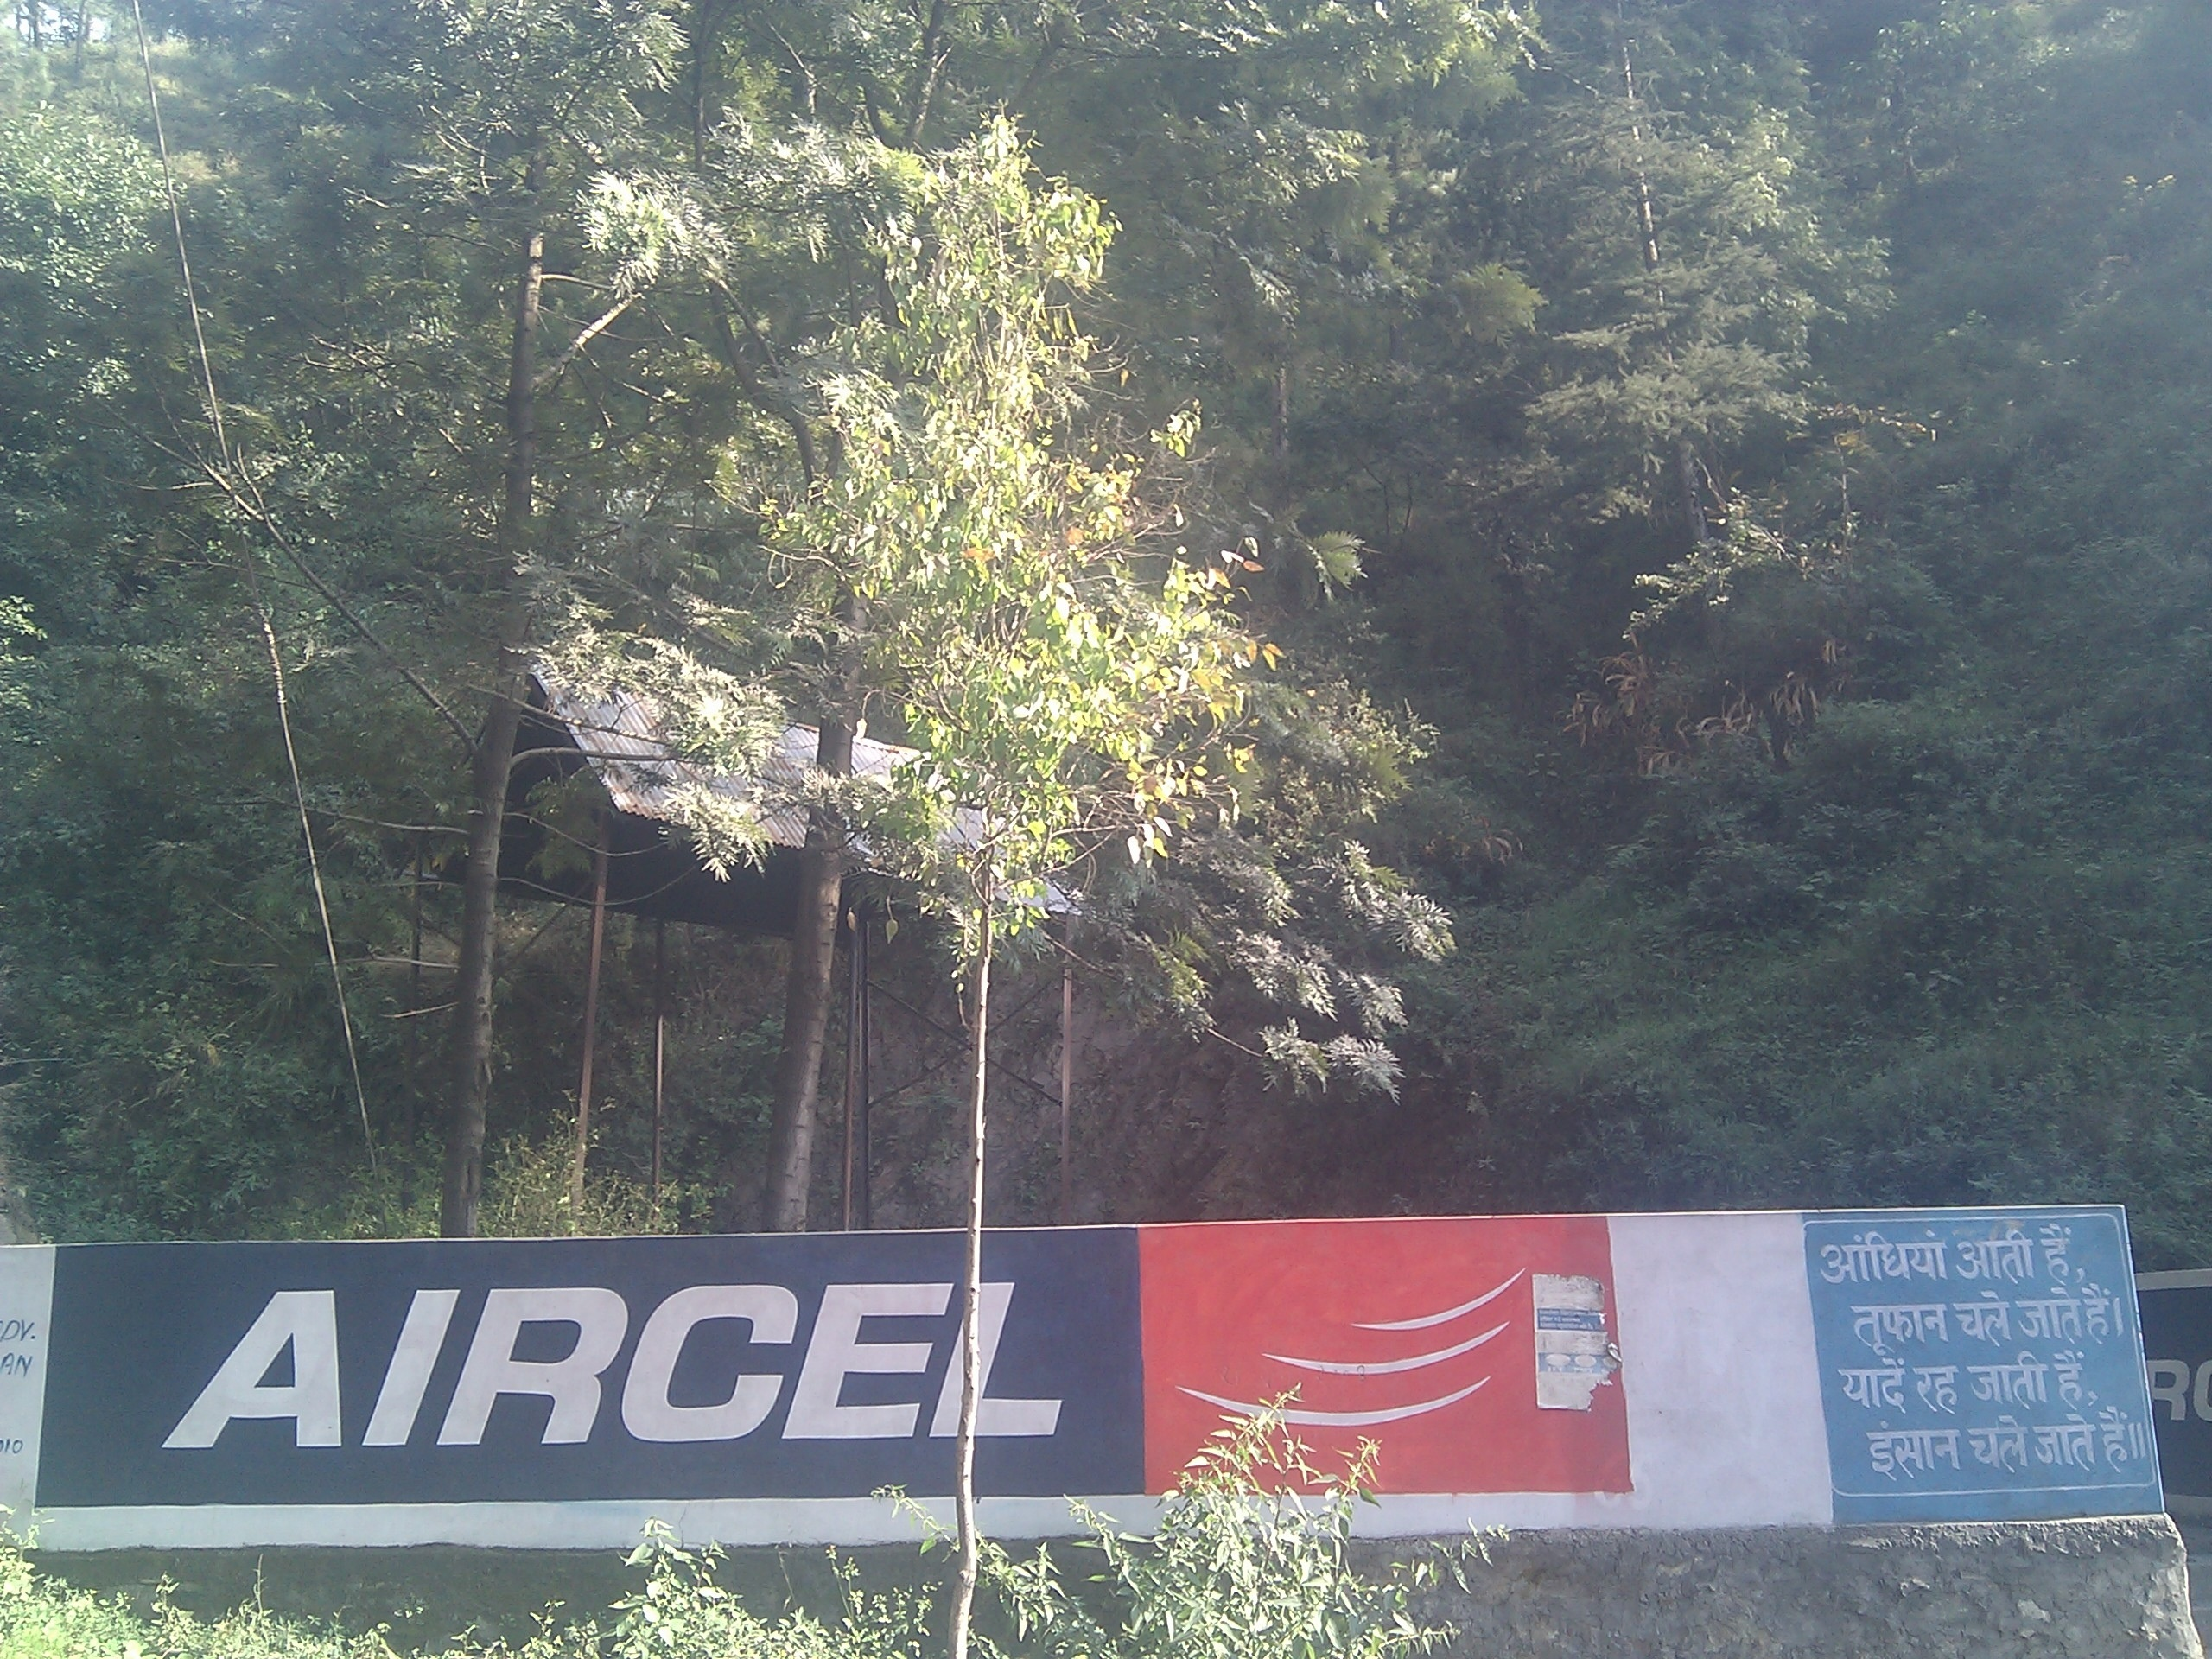 Cheap Aircel hoarding at a Kalka-Shimla highway crematorium